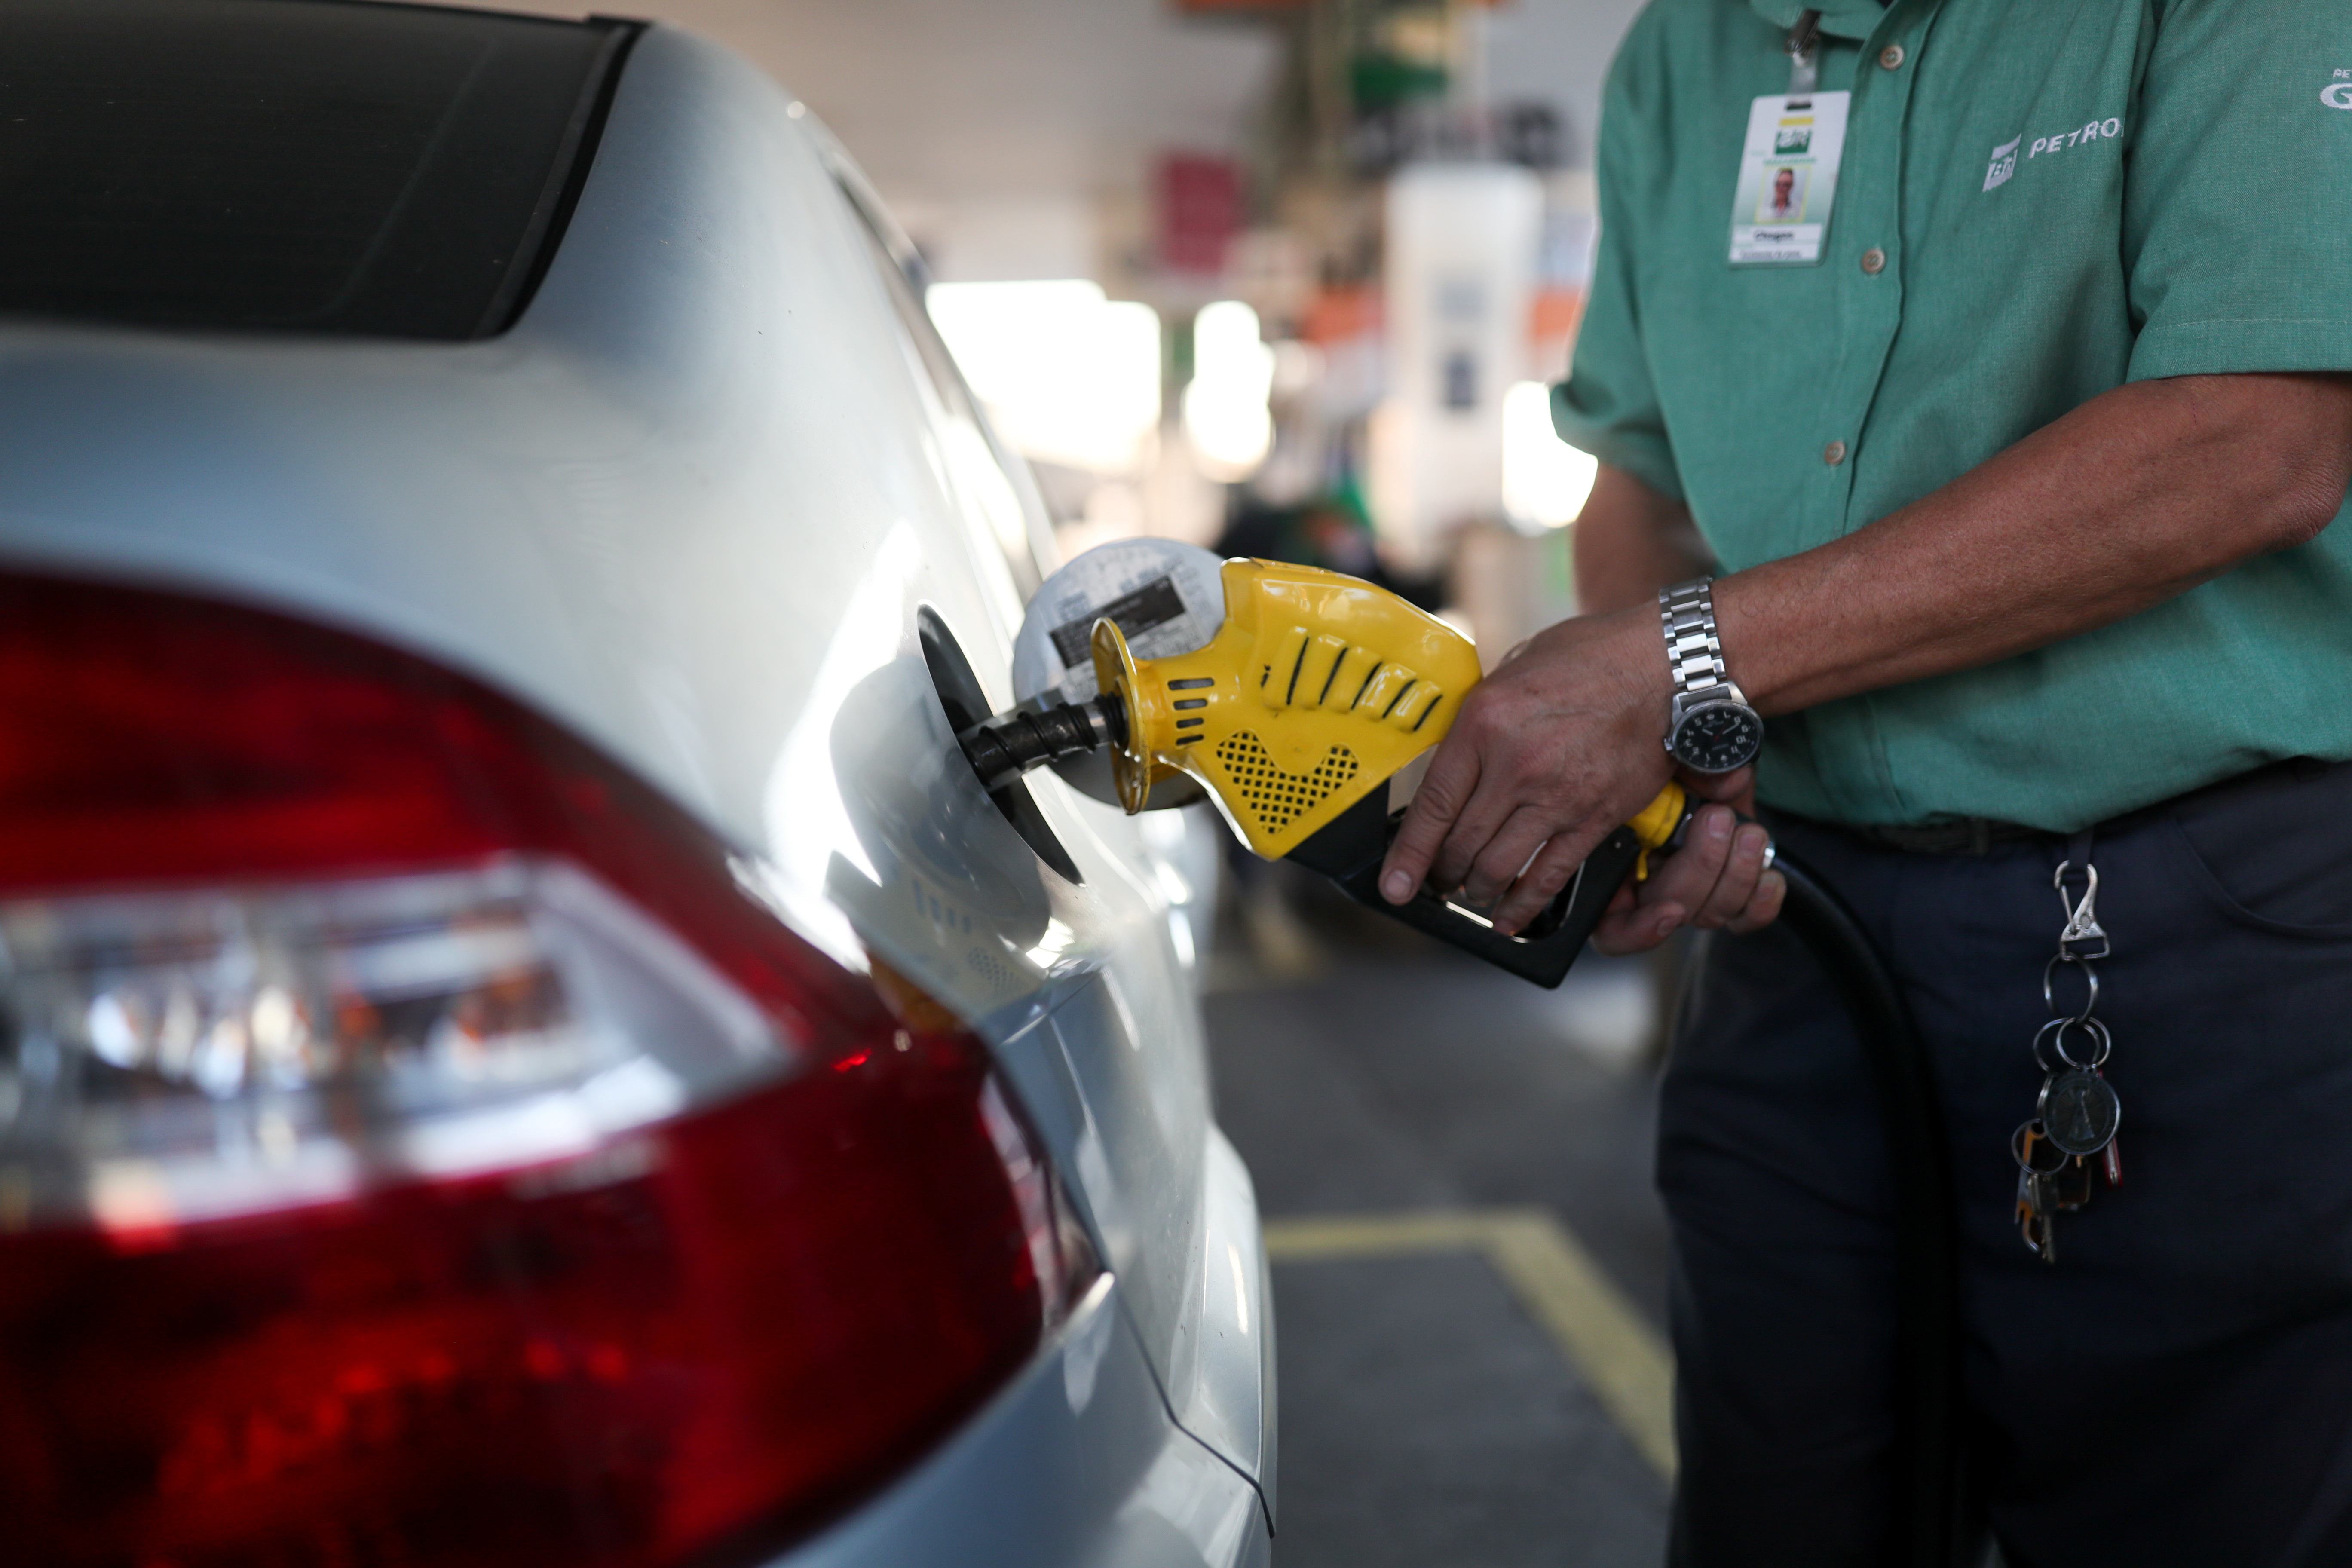 A man holds a fuel pump at a gas station in Rio de Janeiro, Brazil July 8, 2021. REUTERS/Amanda Perobelli/Files